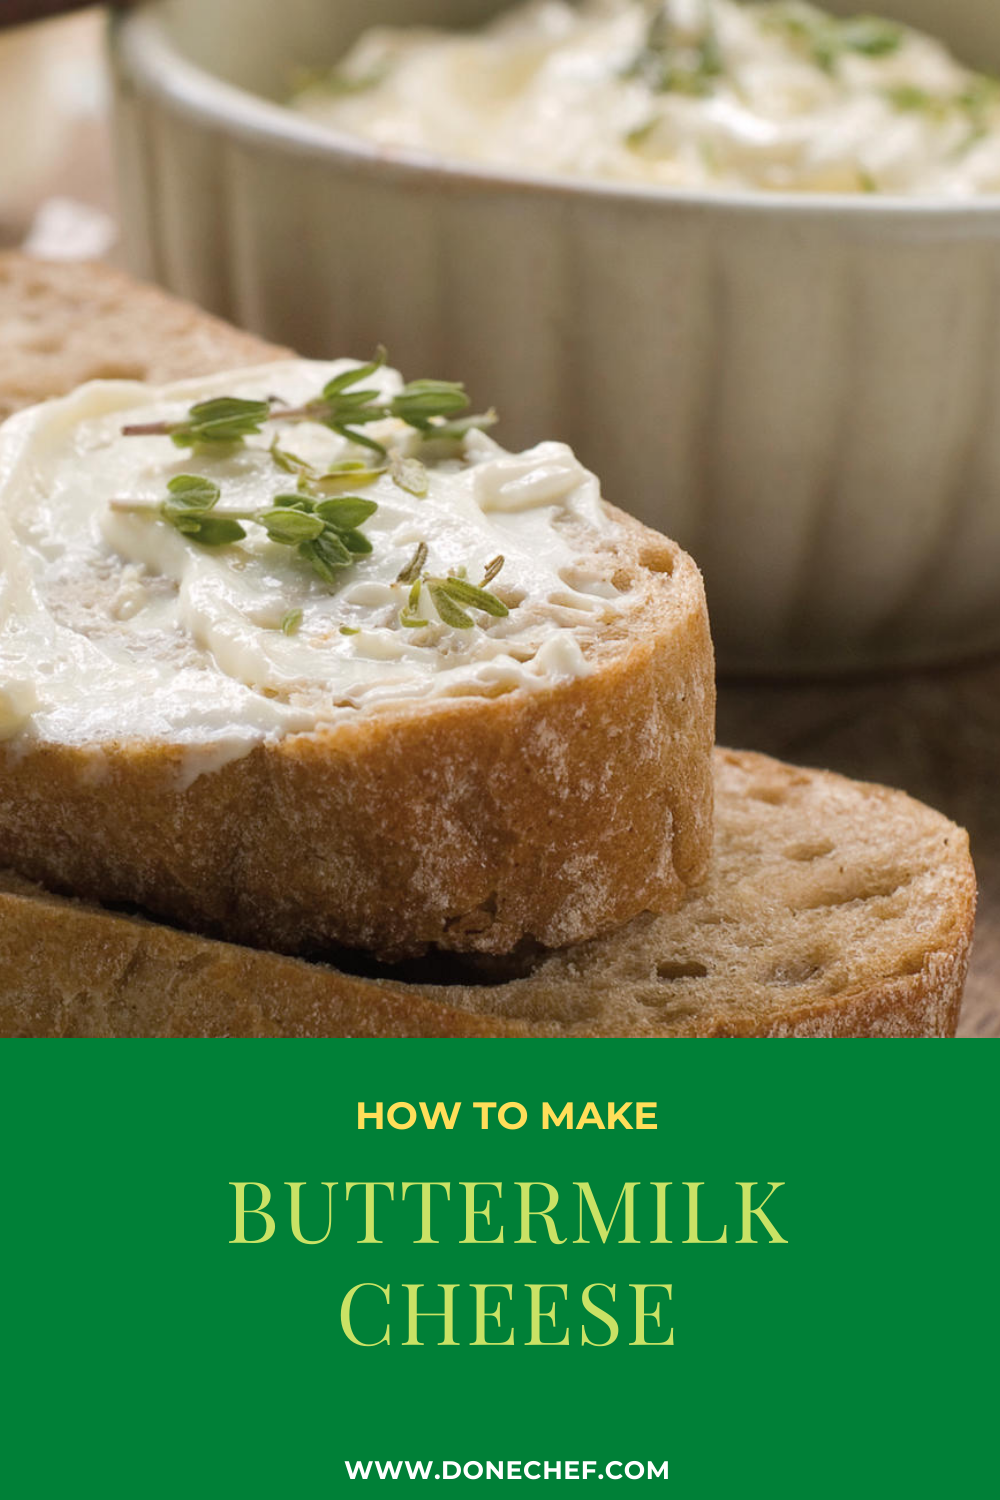 How to make Buttermilk cheese